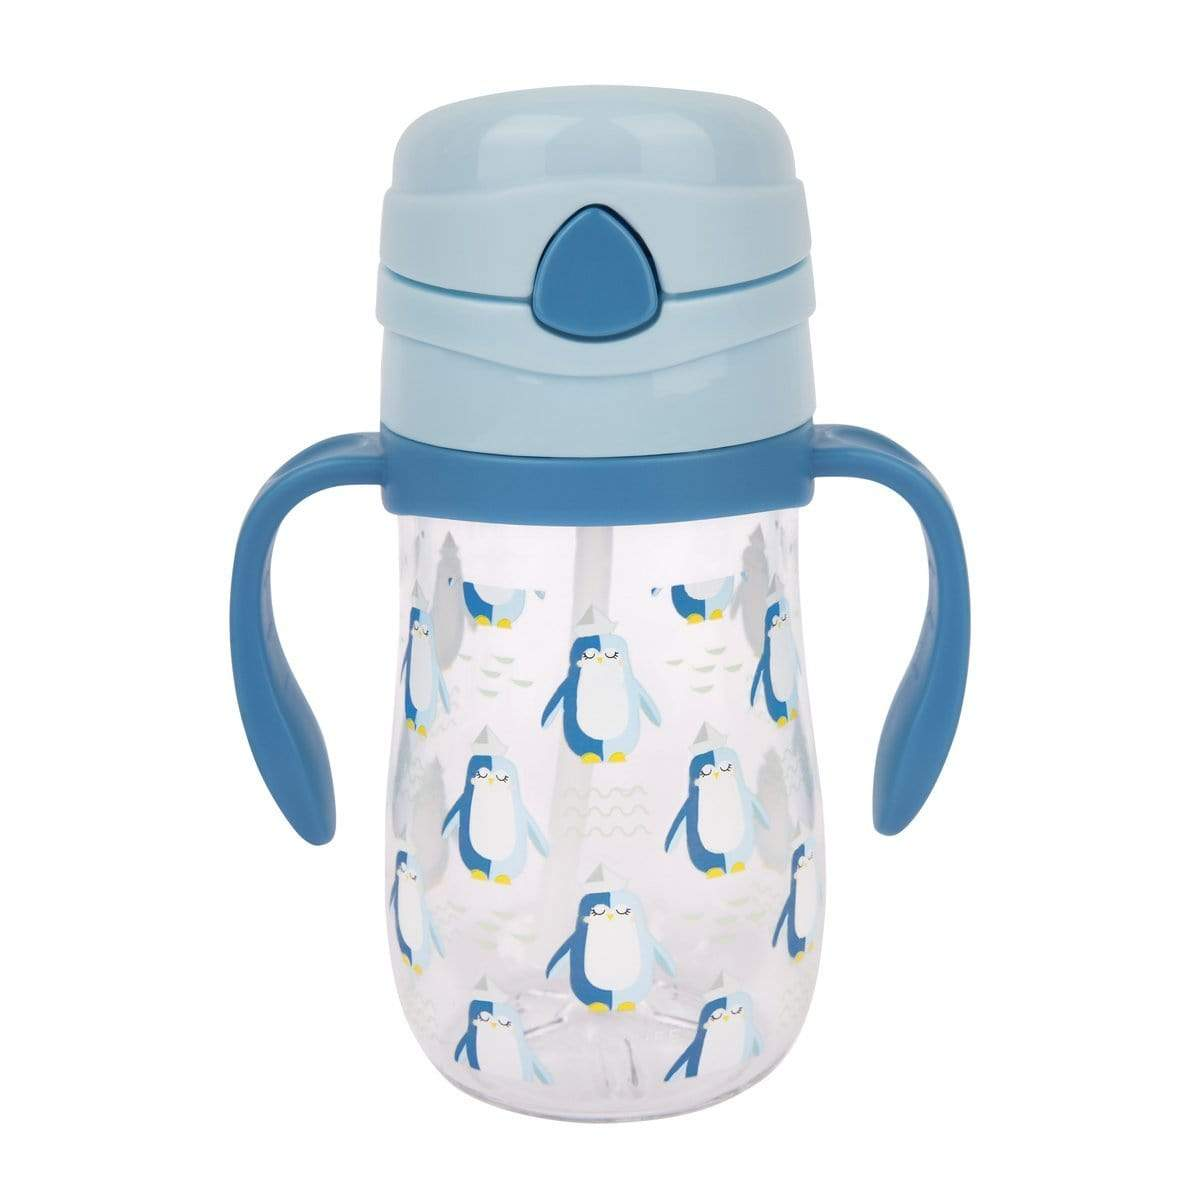 Sunny Life Dinnerware Sippy Cup - Explorer